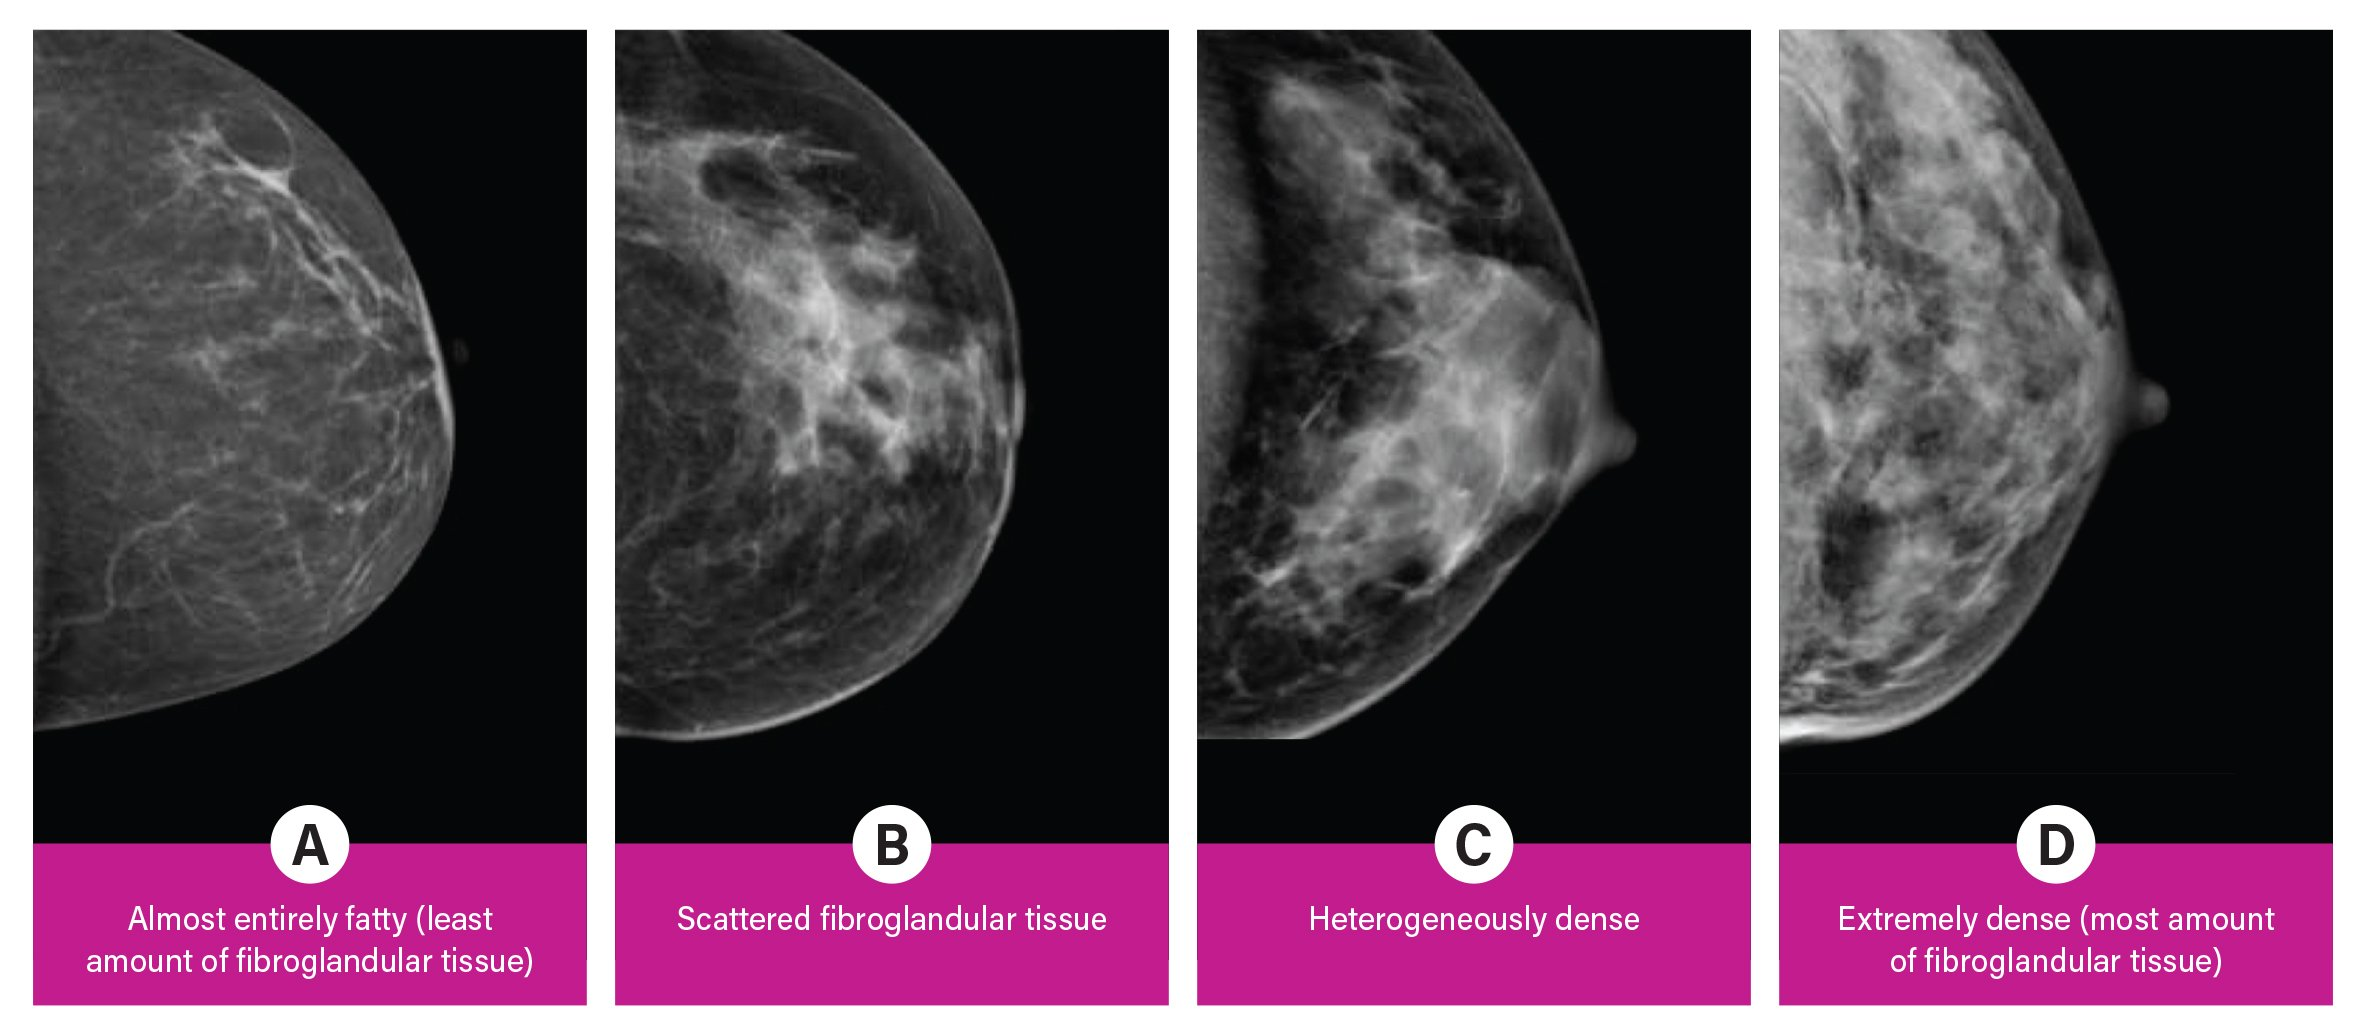 Breast density is divided into four categories, from lowest to highest amounts of fibroglandular tissue composition. Category A: Almost entirely fatty (least amount of fibroglandular tissue). Category B: Scattered fibroglandular tissue. Category C: Heterogeneously dense. Category D: Extremely dense (most amount of fibroglandular tissue).